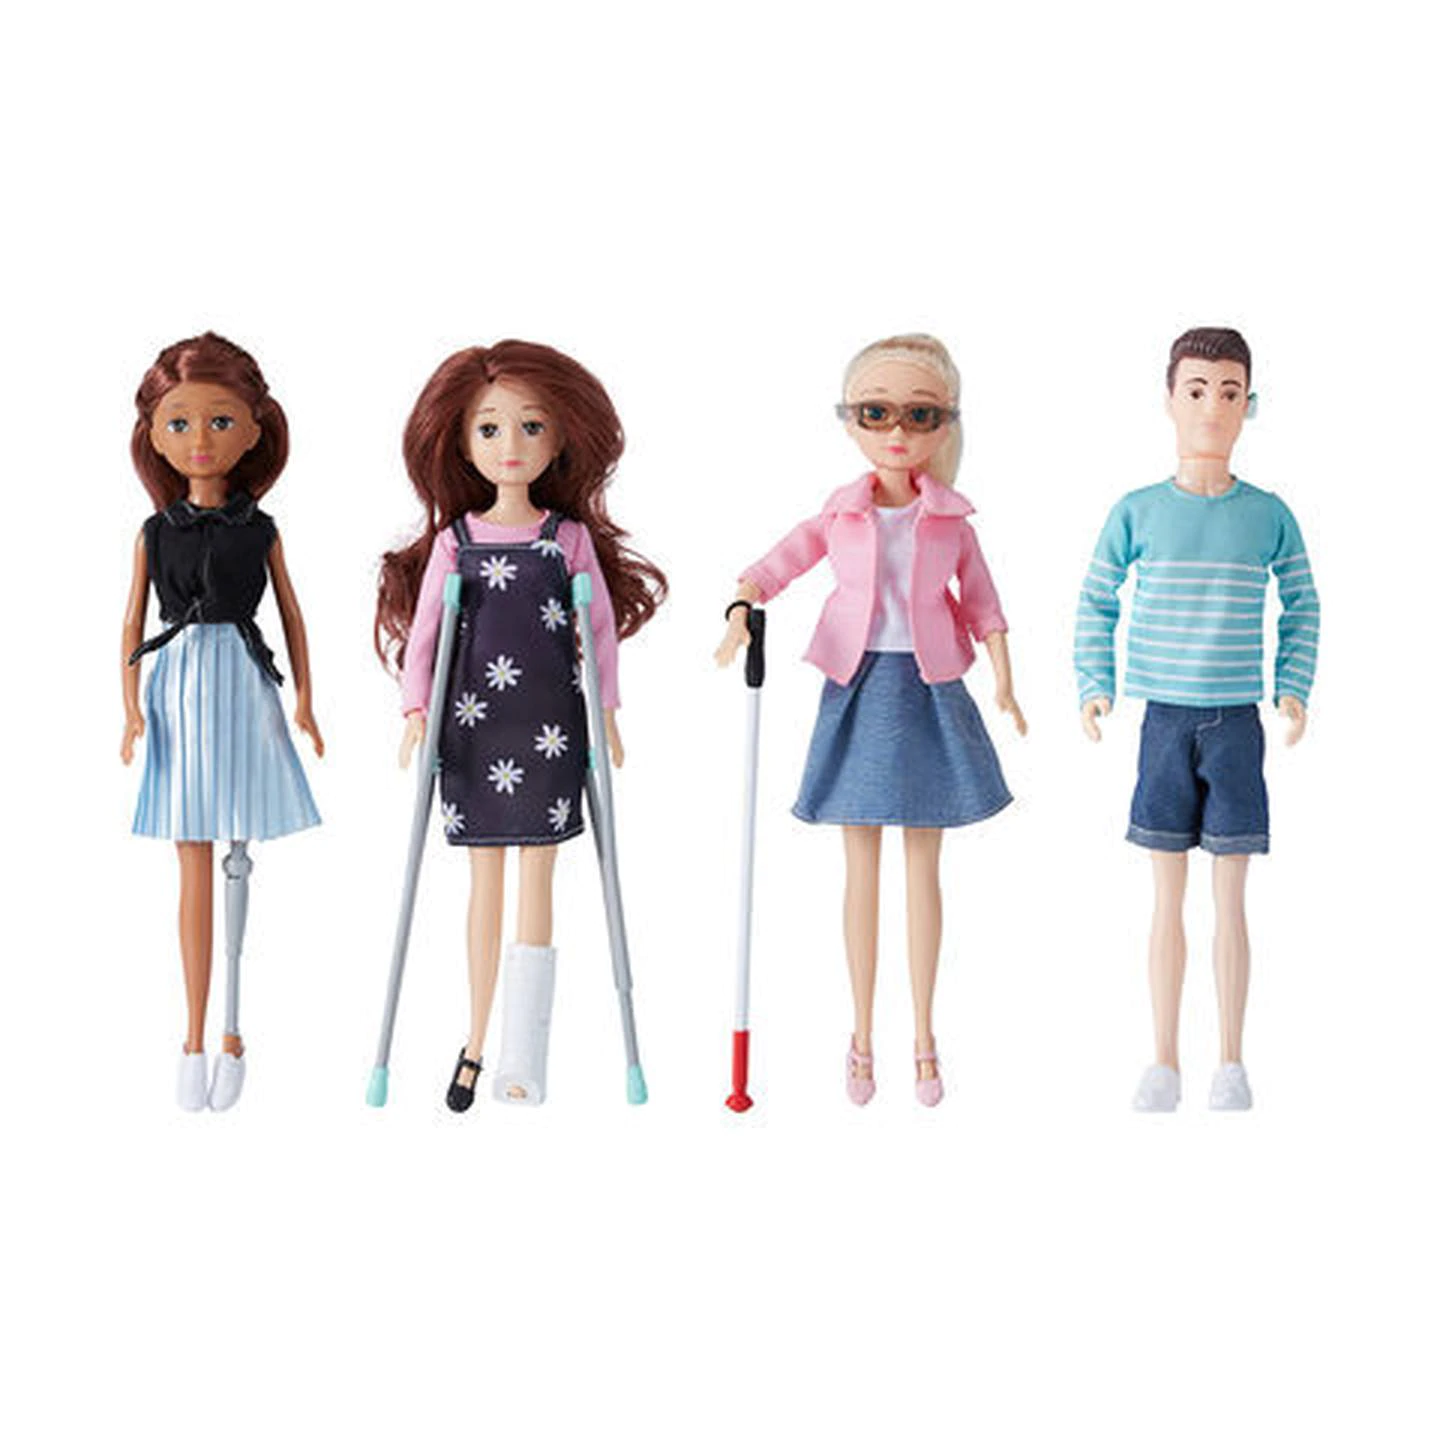 Kmart's new line of fashion dolls with disabilities how now grown. Photo: Kmart